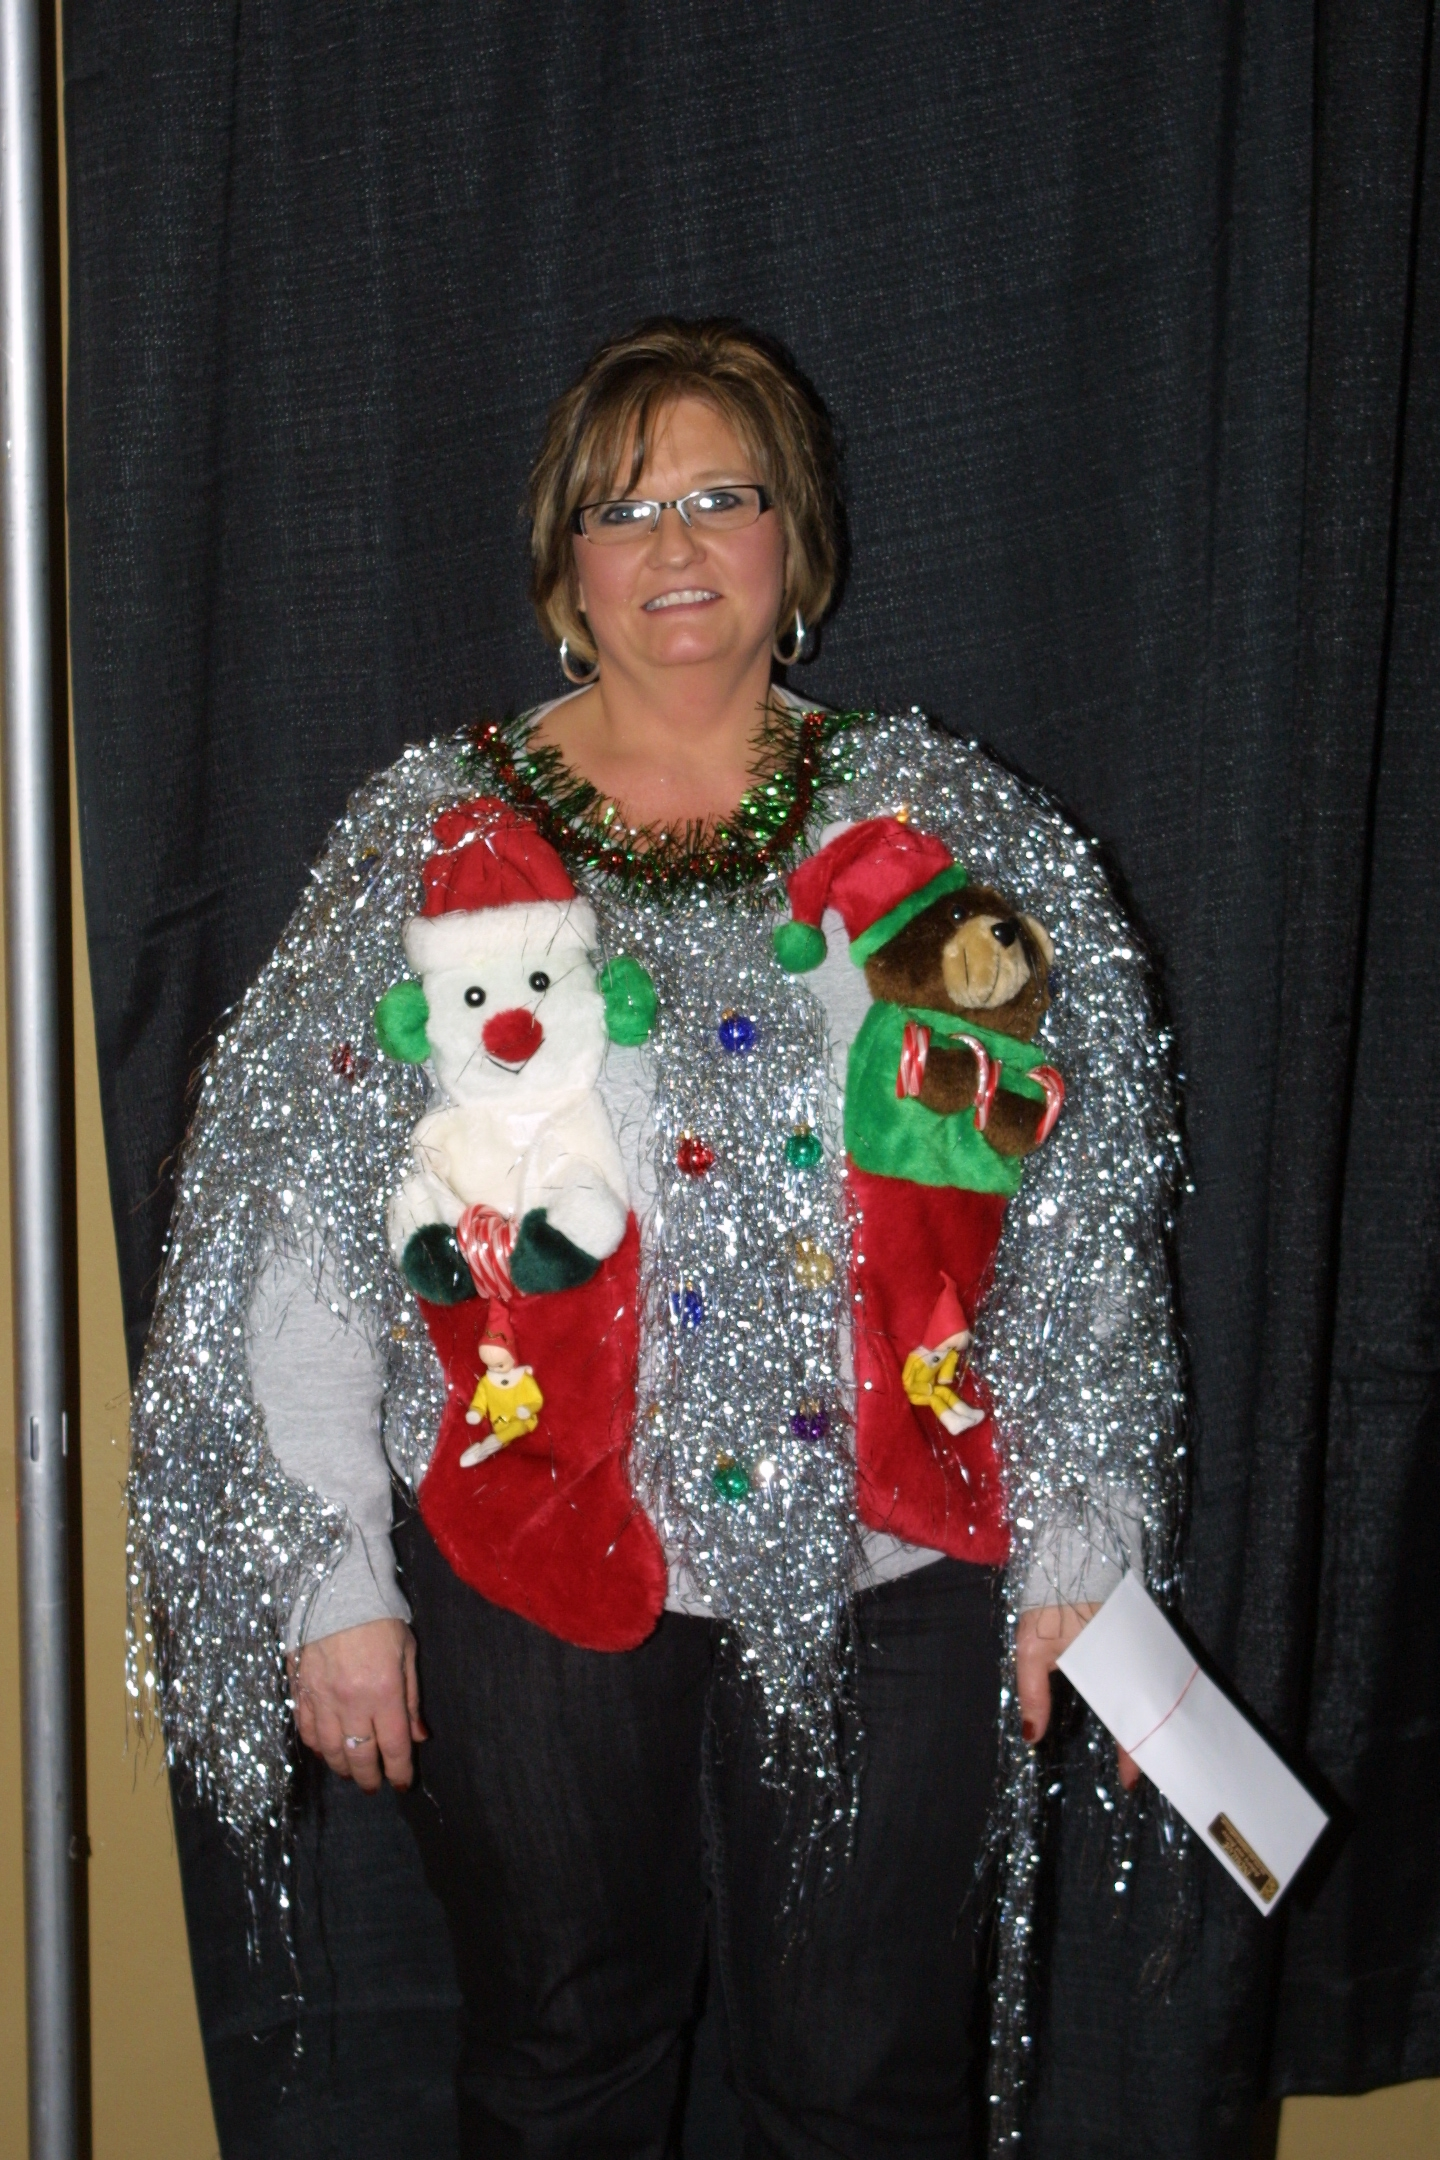 Jodee won the shiniest sweater! She looked great!